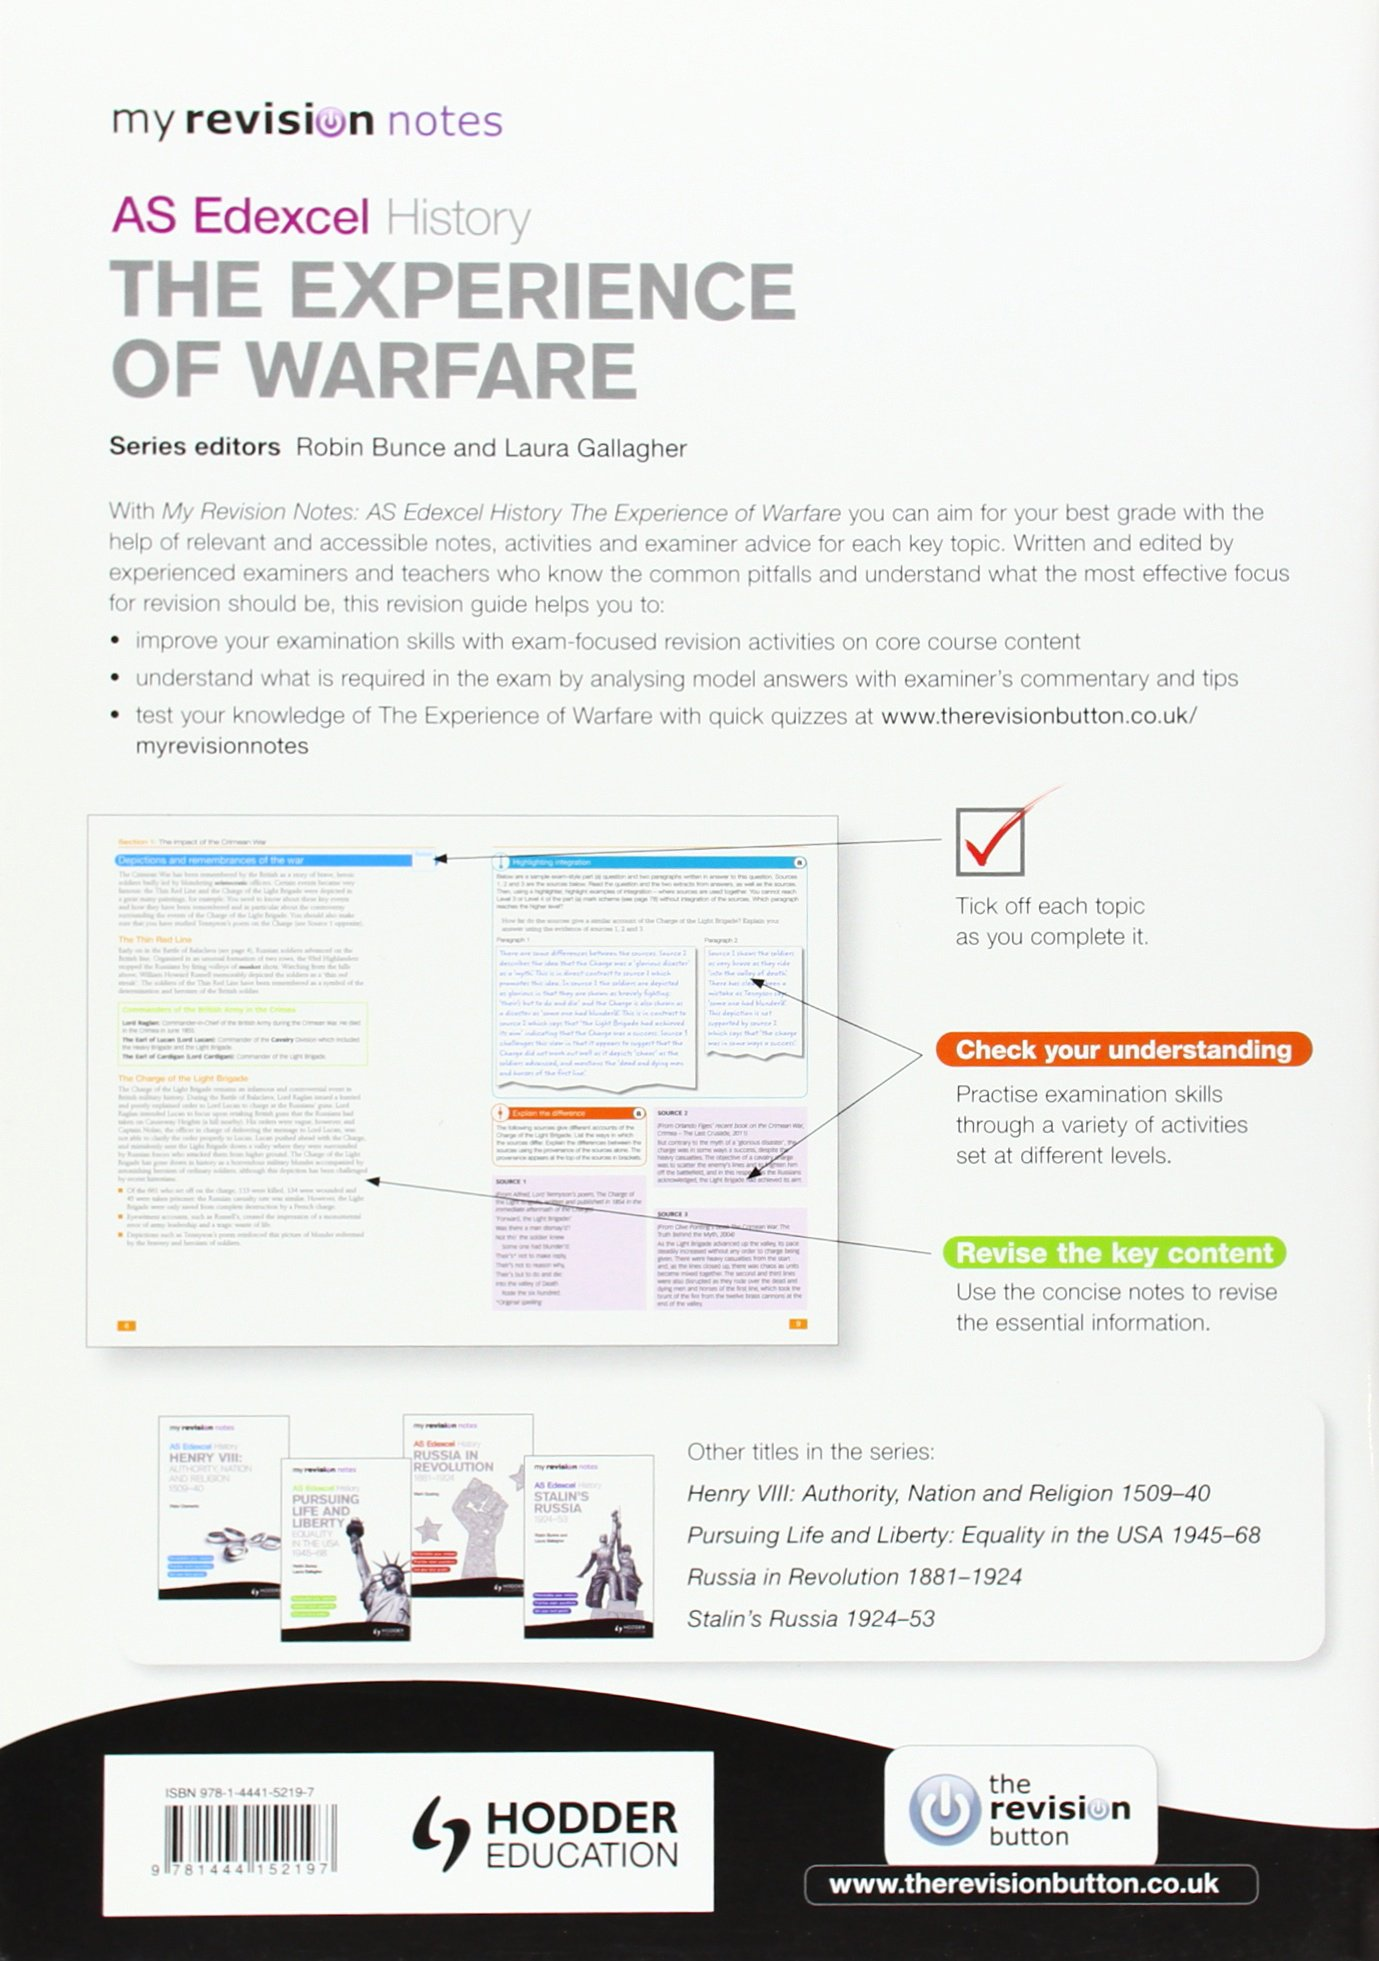 My Revision Notes Edexcel AS History: The Experience of Warfare (MRN): Amazon.co.uk: Barbara Warnock: 9781444152197: Books